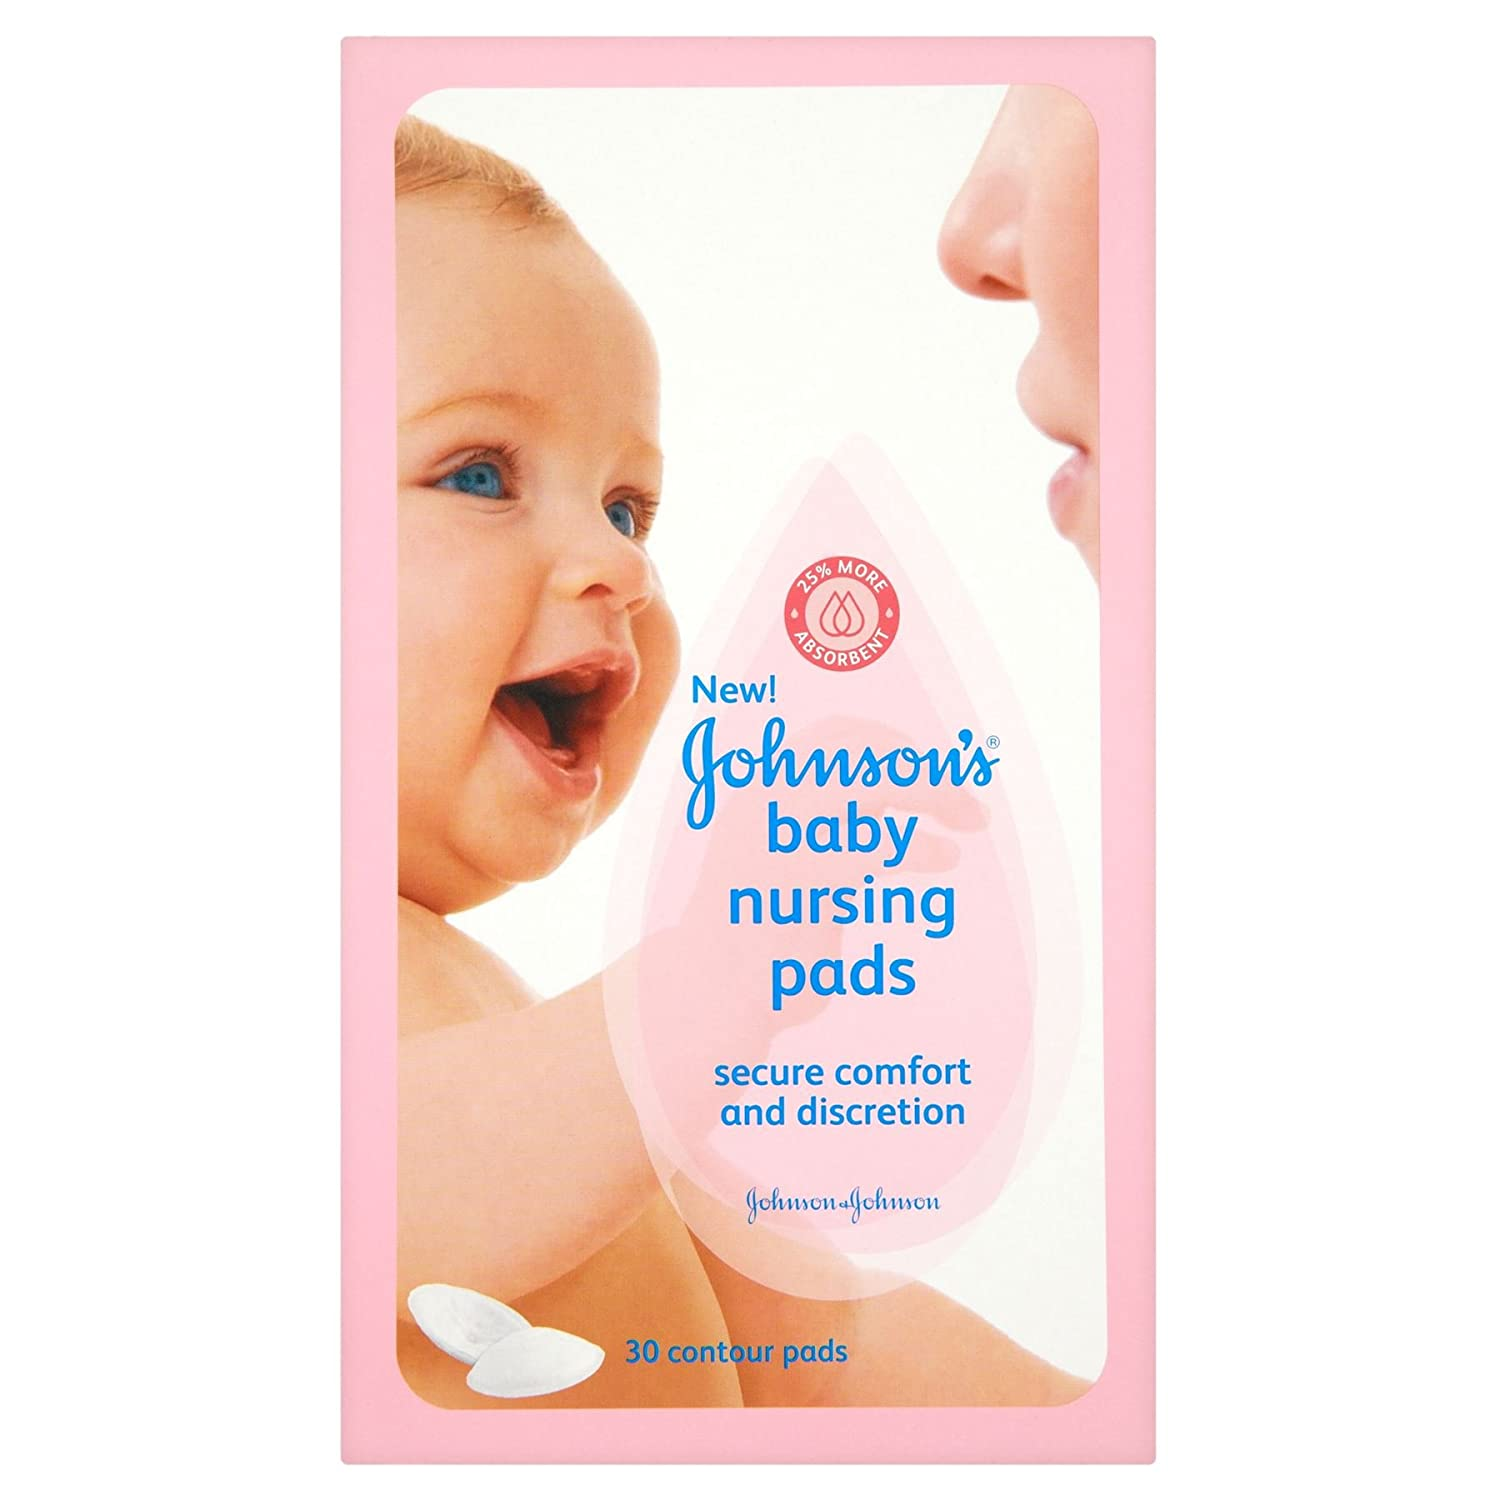 JOHNSONS NURSING PADS 30S Johnson's